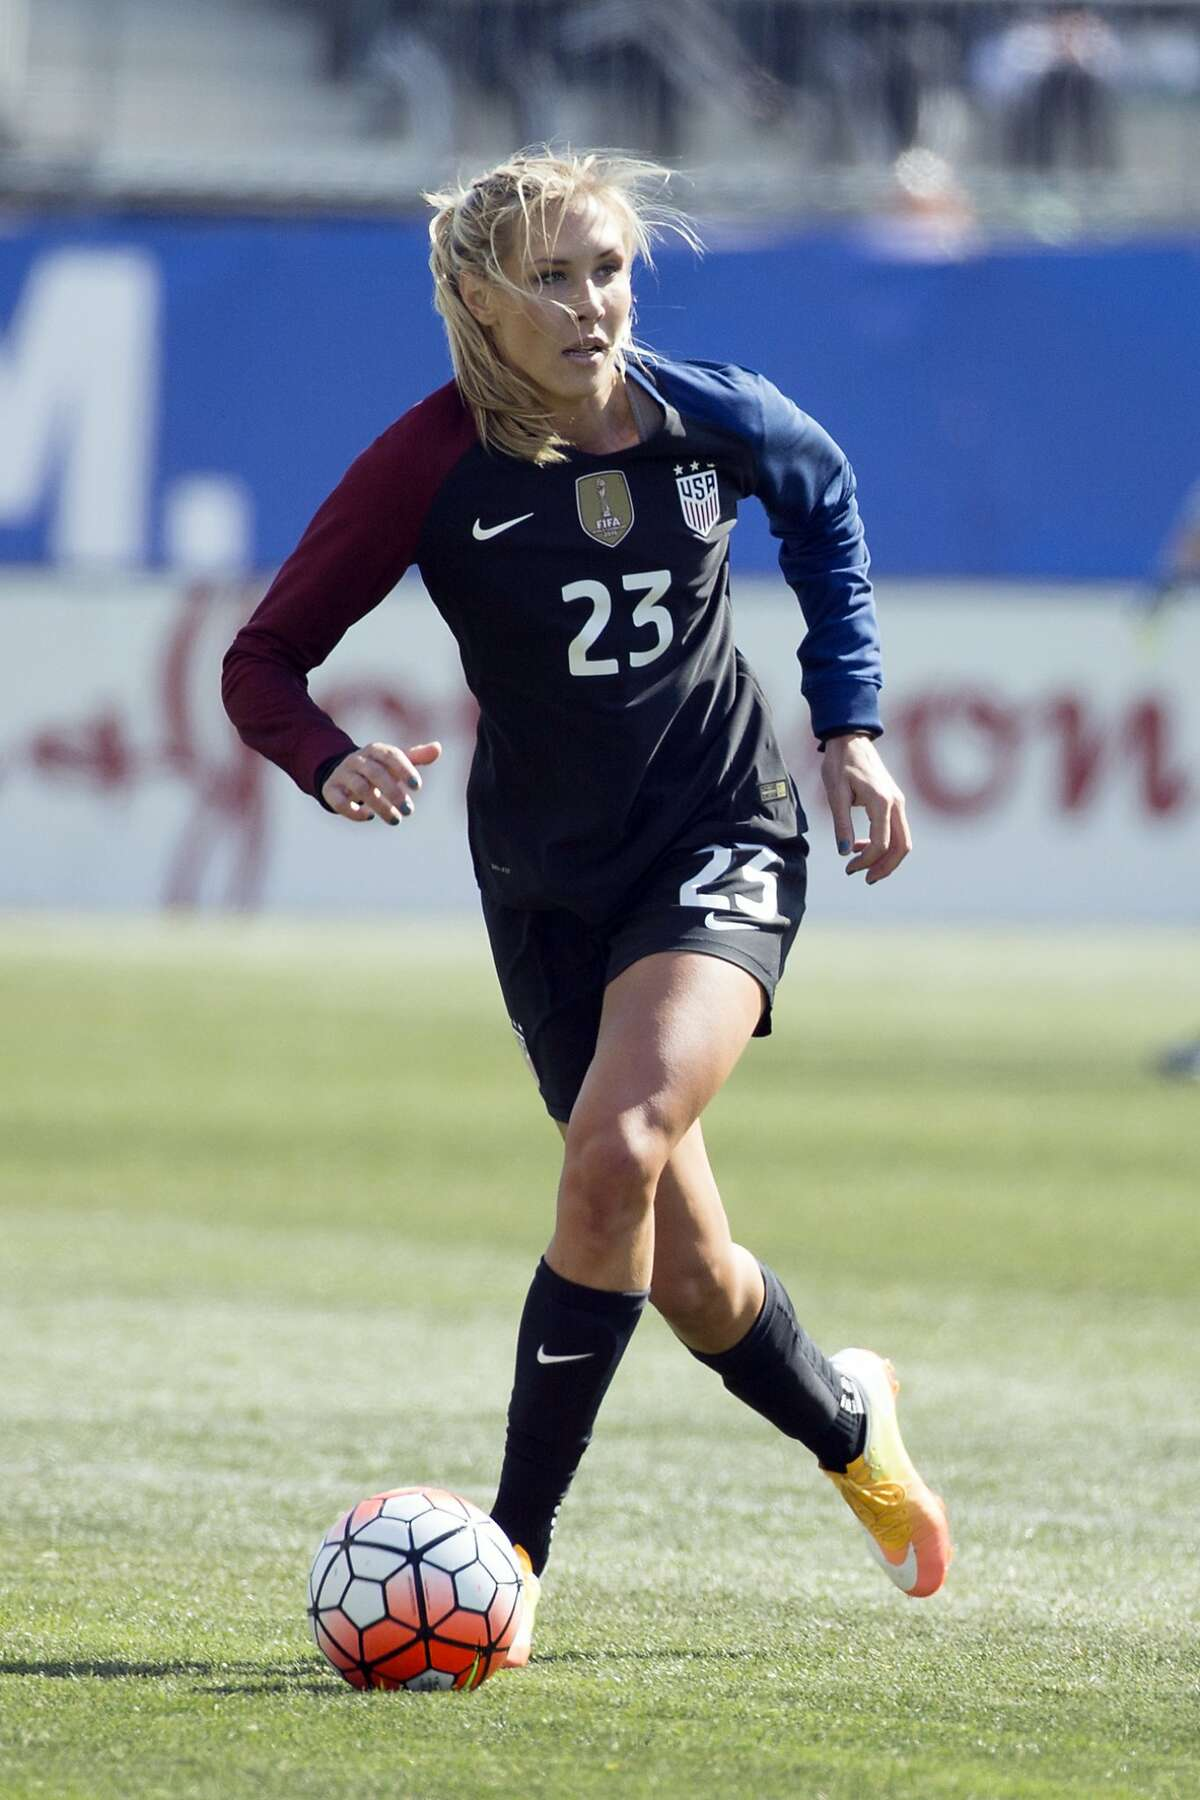 FILE - In this April 10, 2016, file photo, United States' Allie Long (23) dribbles the ball during the second half of an international friendly soccer match against Colombia in Chester, Pa. Long is among 23 players named to the team that was getting in its last three exhibition games this month before heading to Europe for the Women's World Cup, which opens June 7. (AP Photo/Chris Szagola, File)